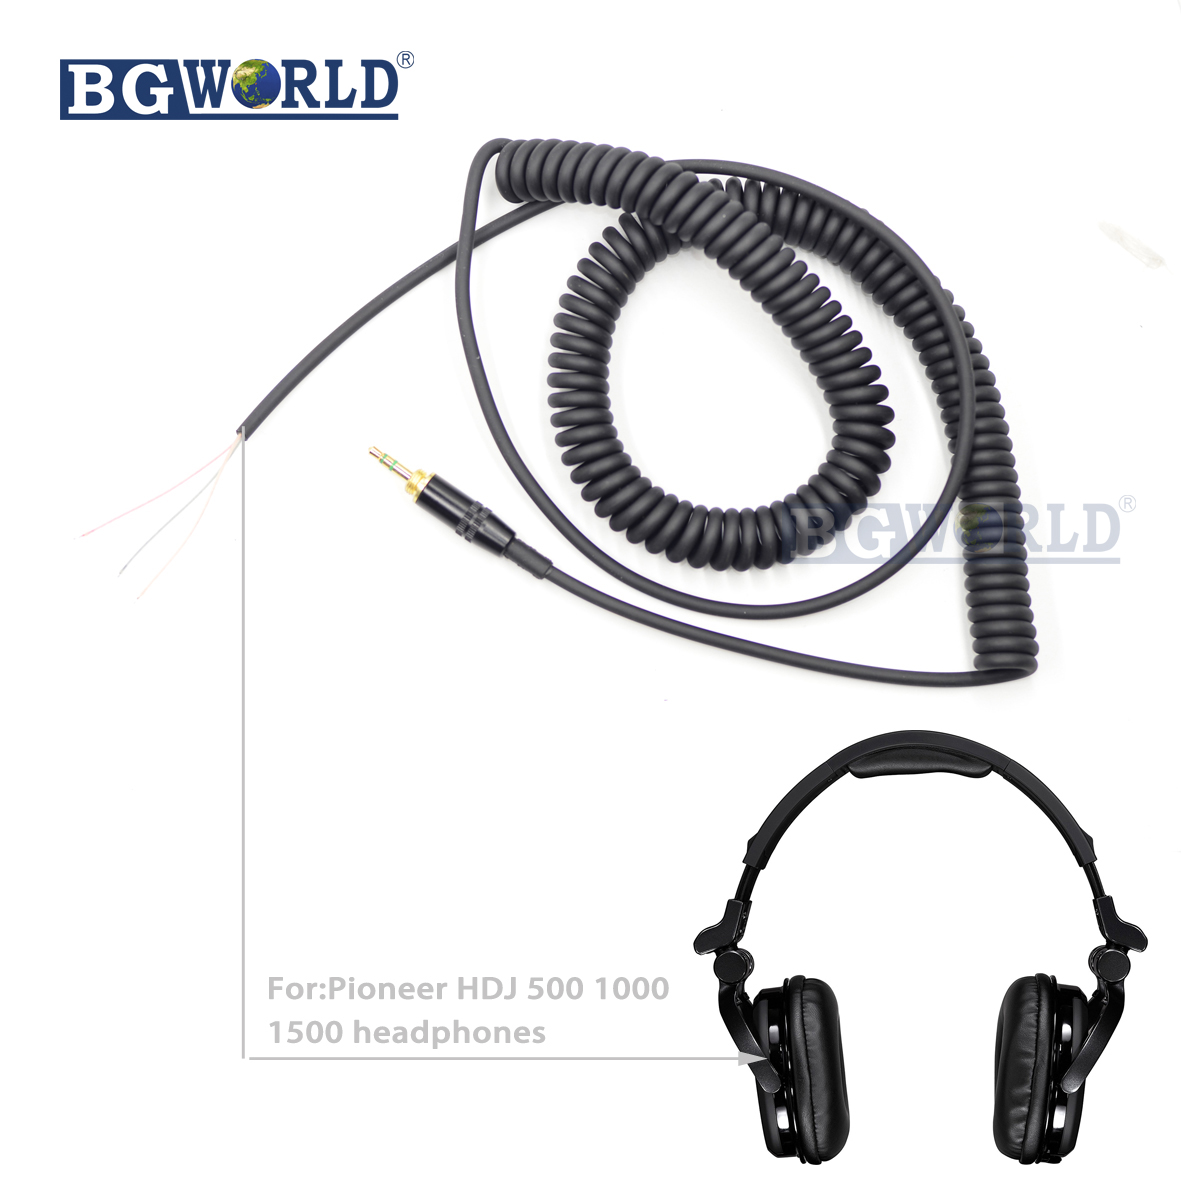 bgworld replacement dj headphone cable cord line earphone cables for pioneer hdj500 hdj1000